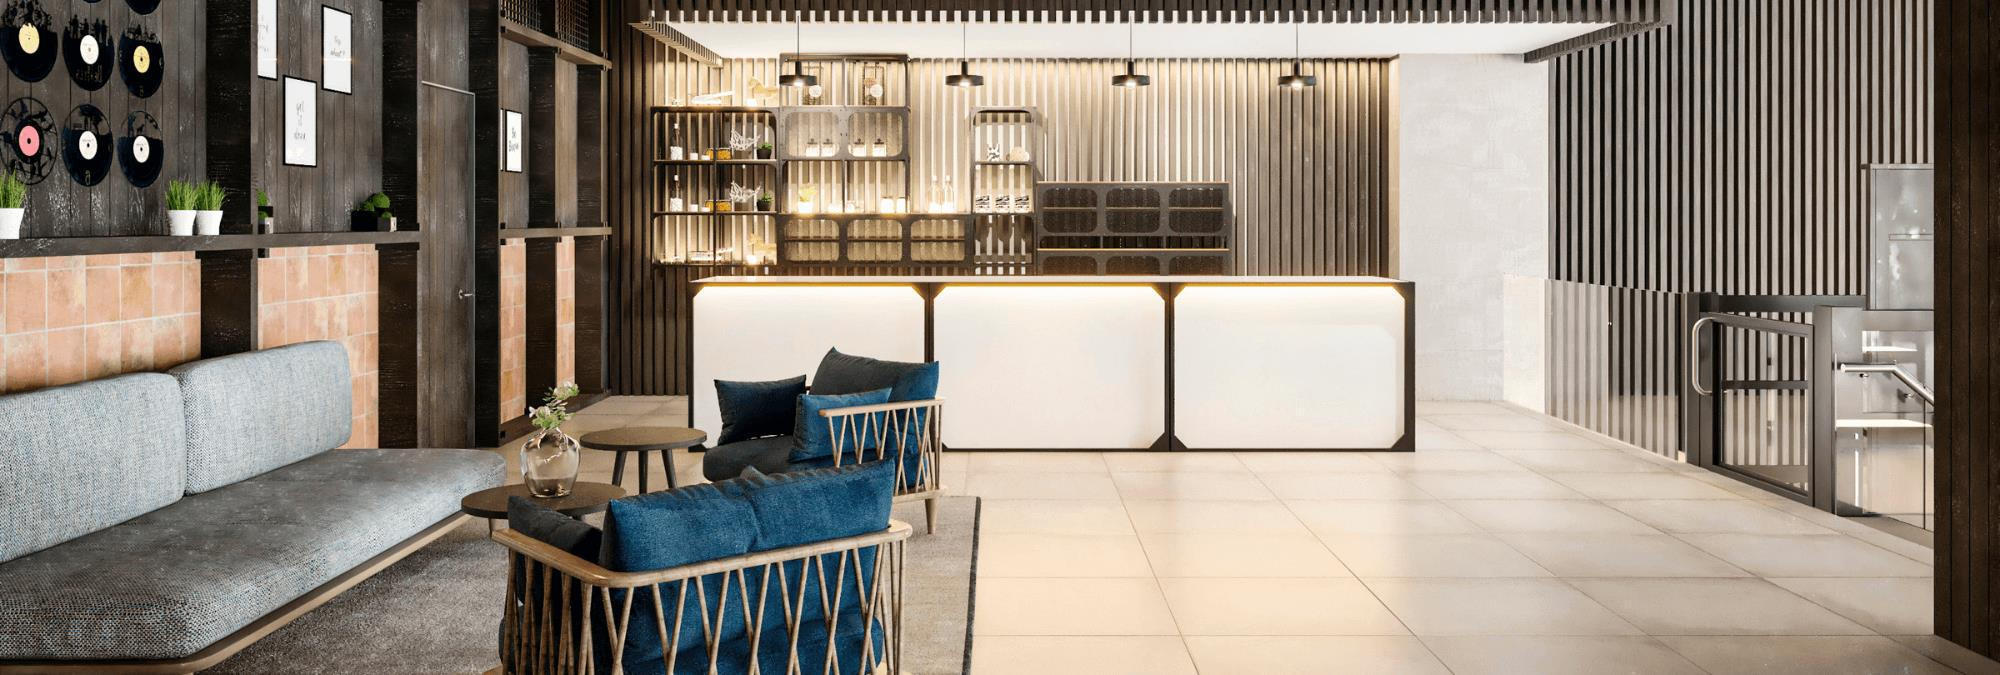 The reception area of innside by Melia.